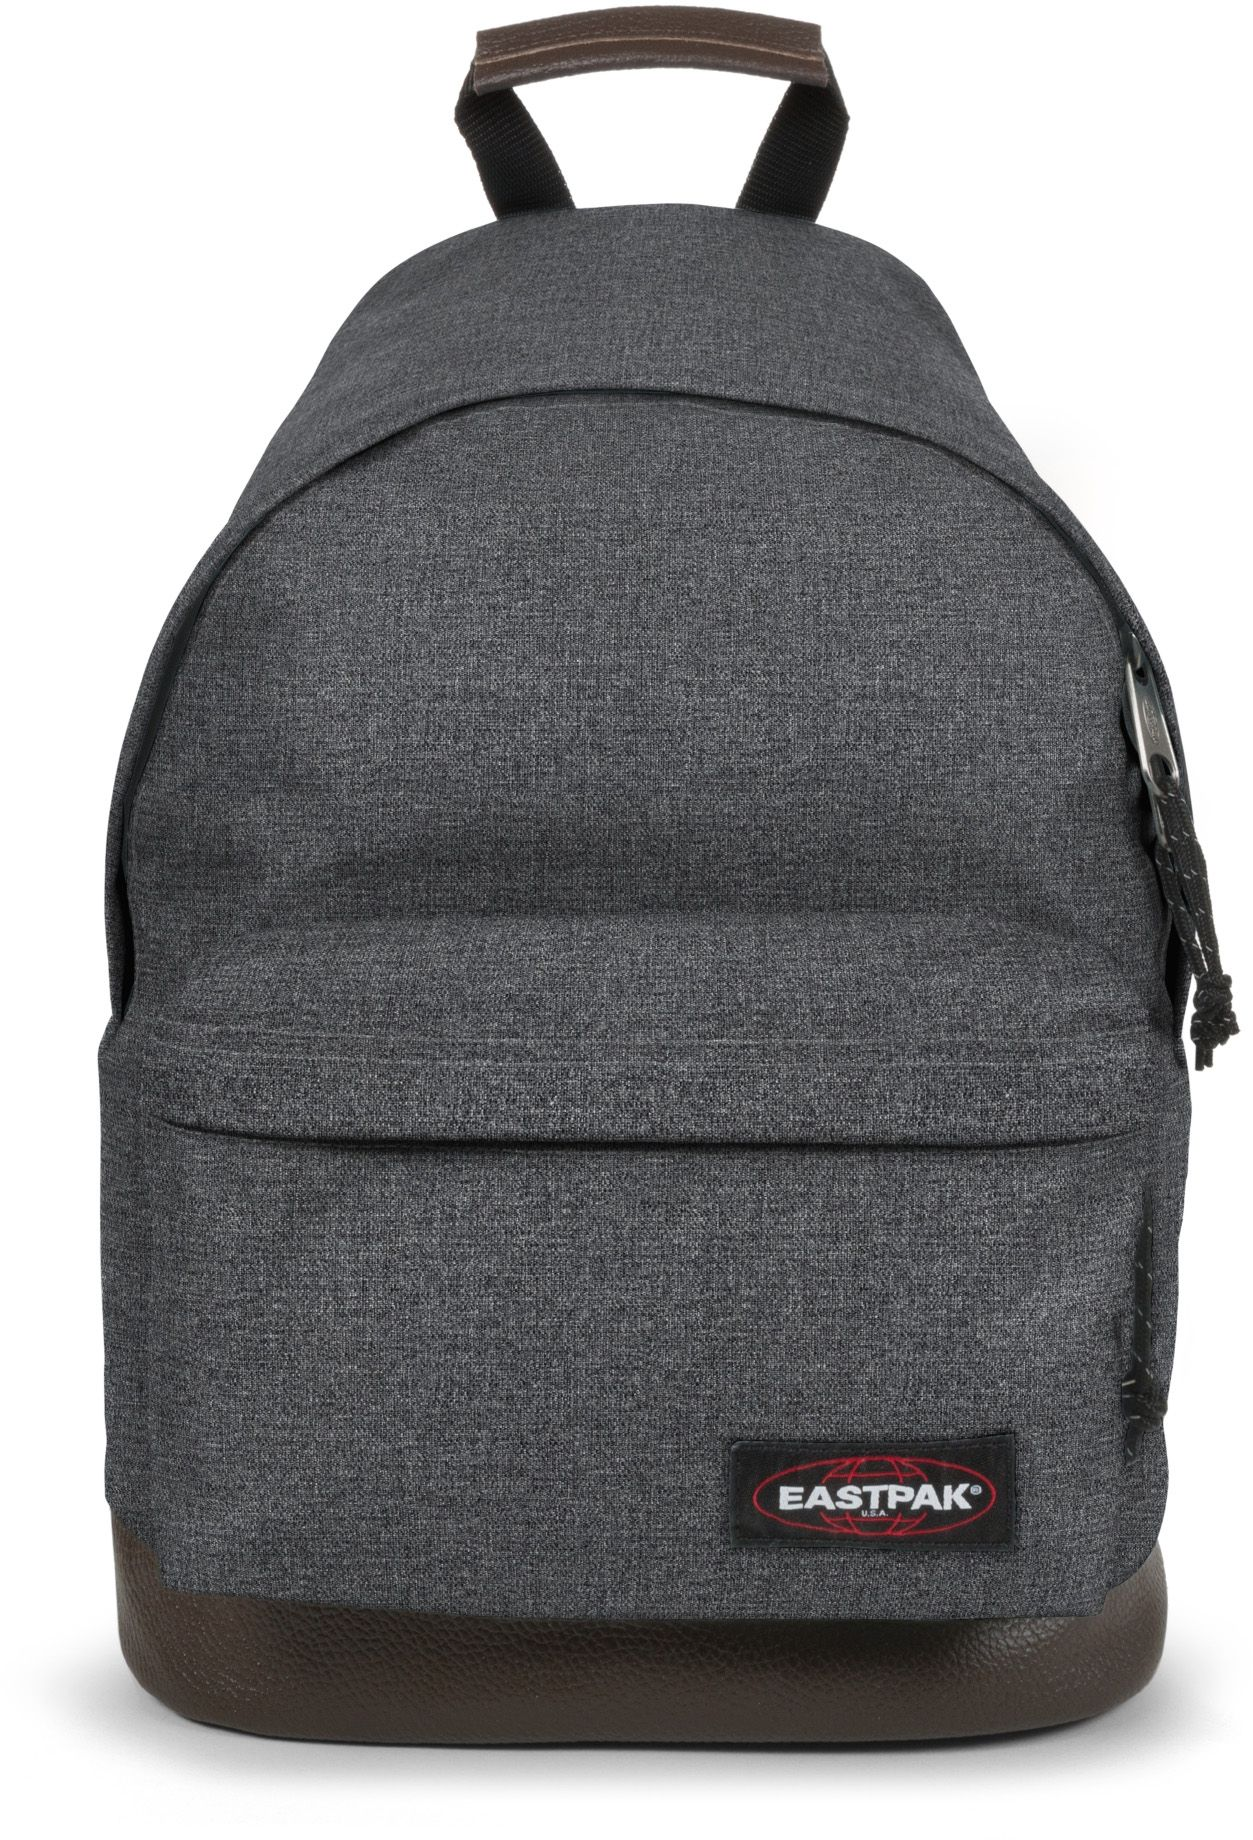 EASTPAK Eastpak Rucksack mit Laptopfach, »WYOMING black denim«